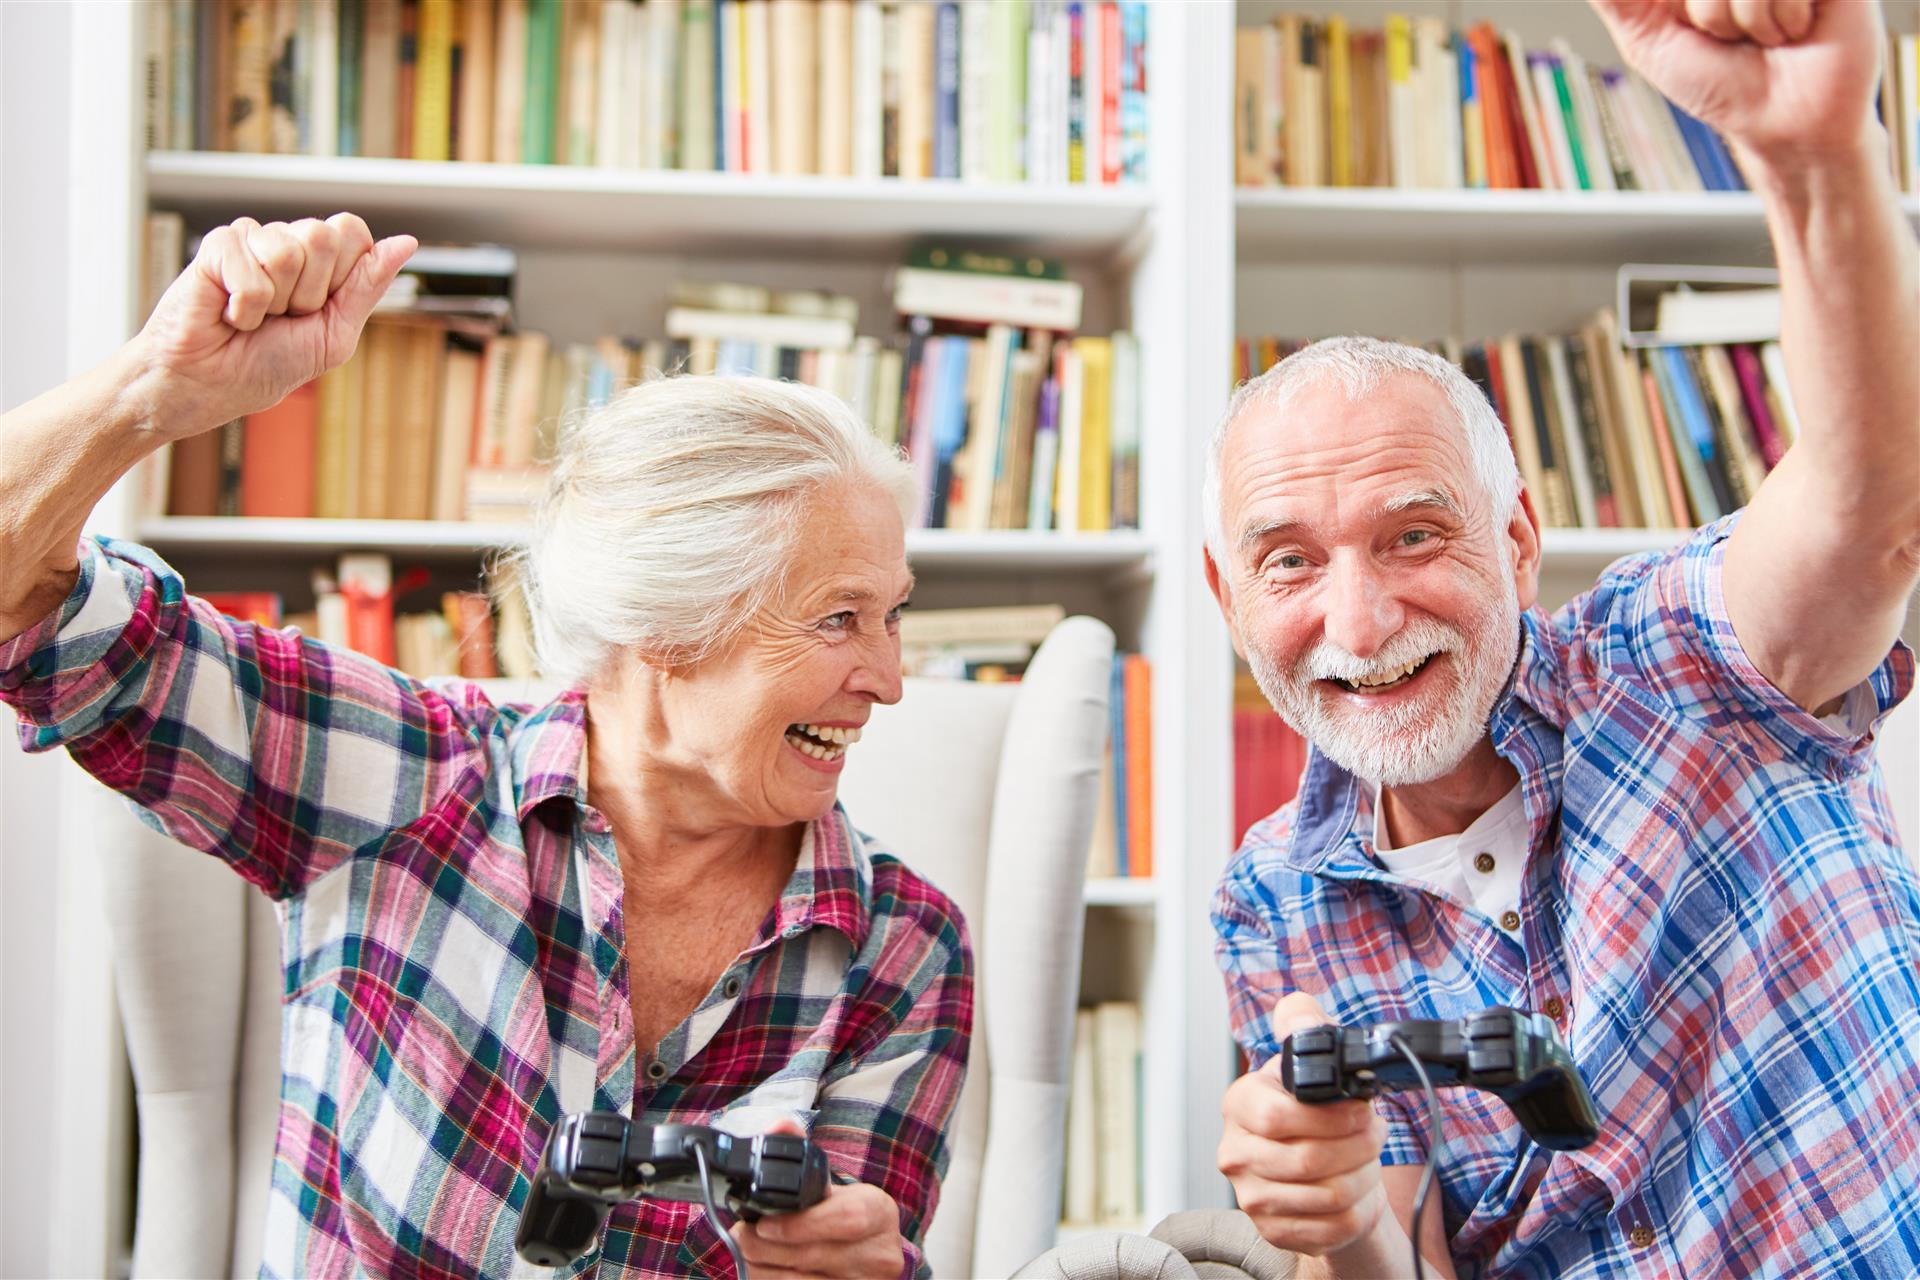 12 Free & Free-to-Play Video Games Ideal for the Senior Set